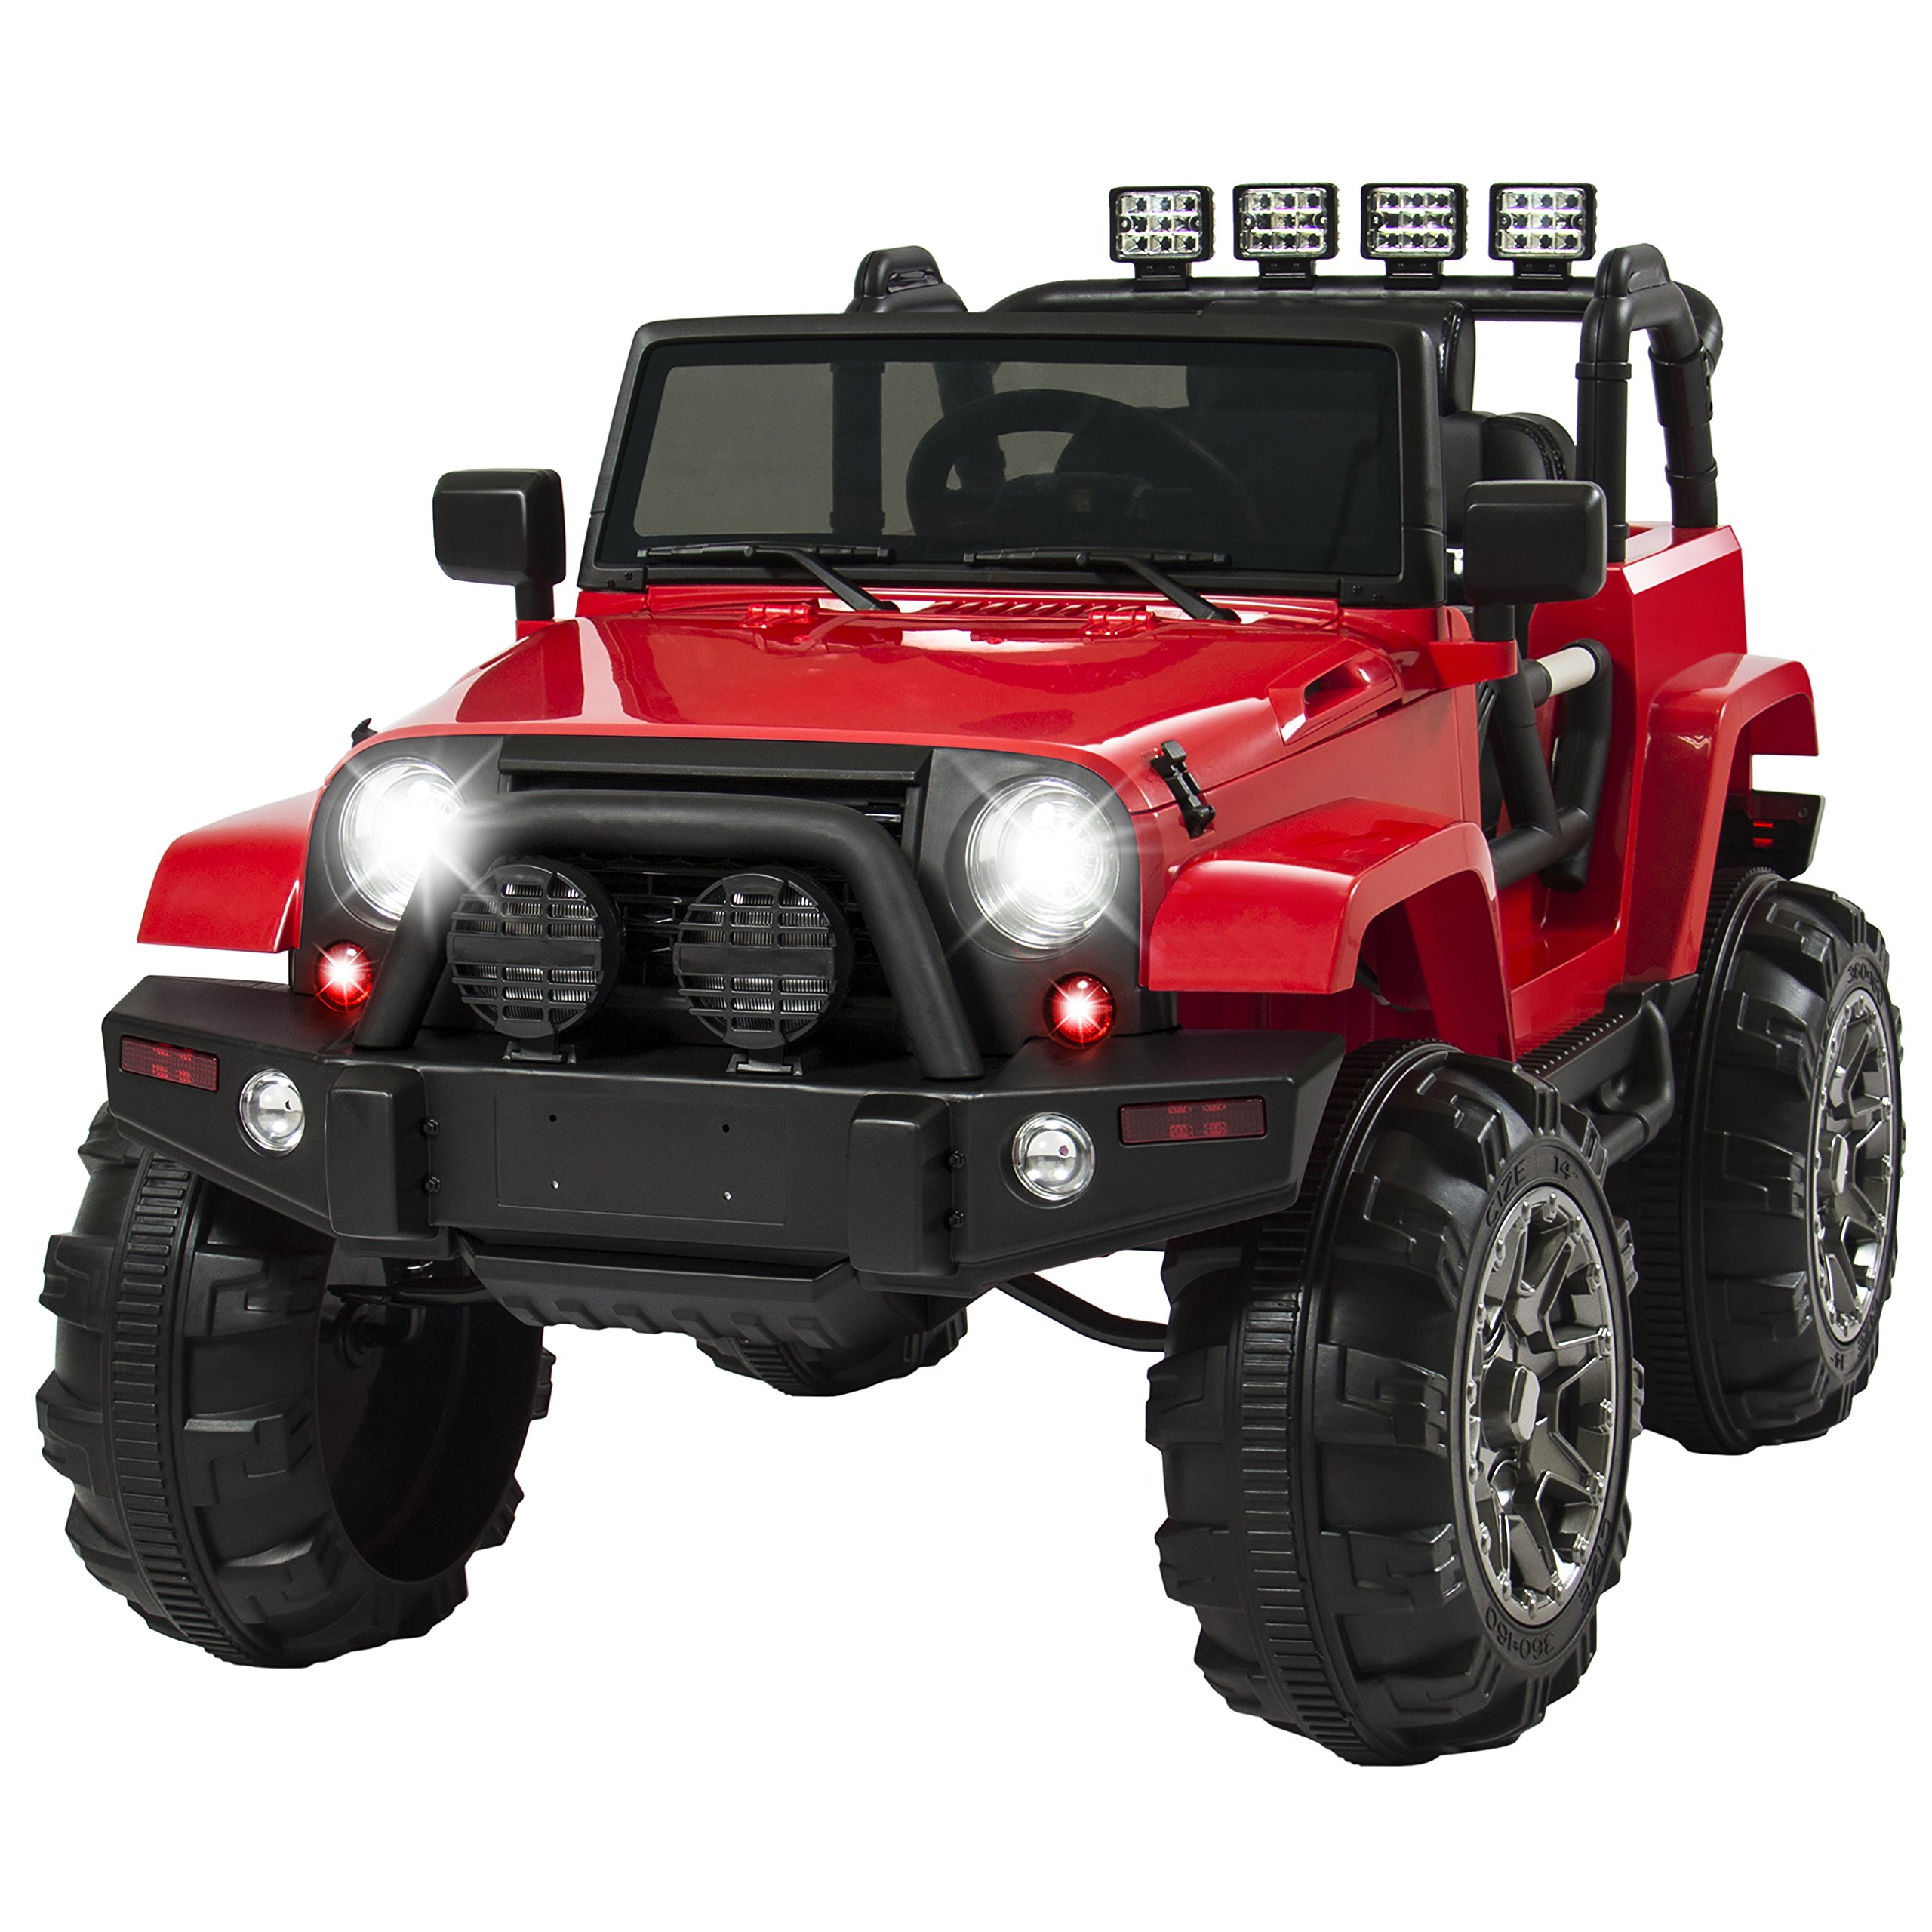 Best Choice Products 12V Ride On Car Truck w/ Remote Control, 3 Speeds, Spring Suspension, LED Light - Red by Best Choice Products